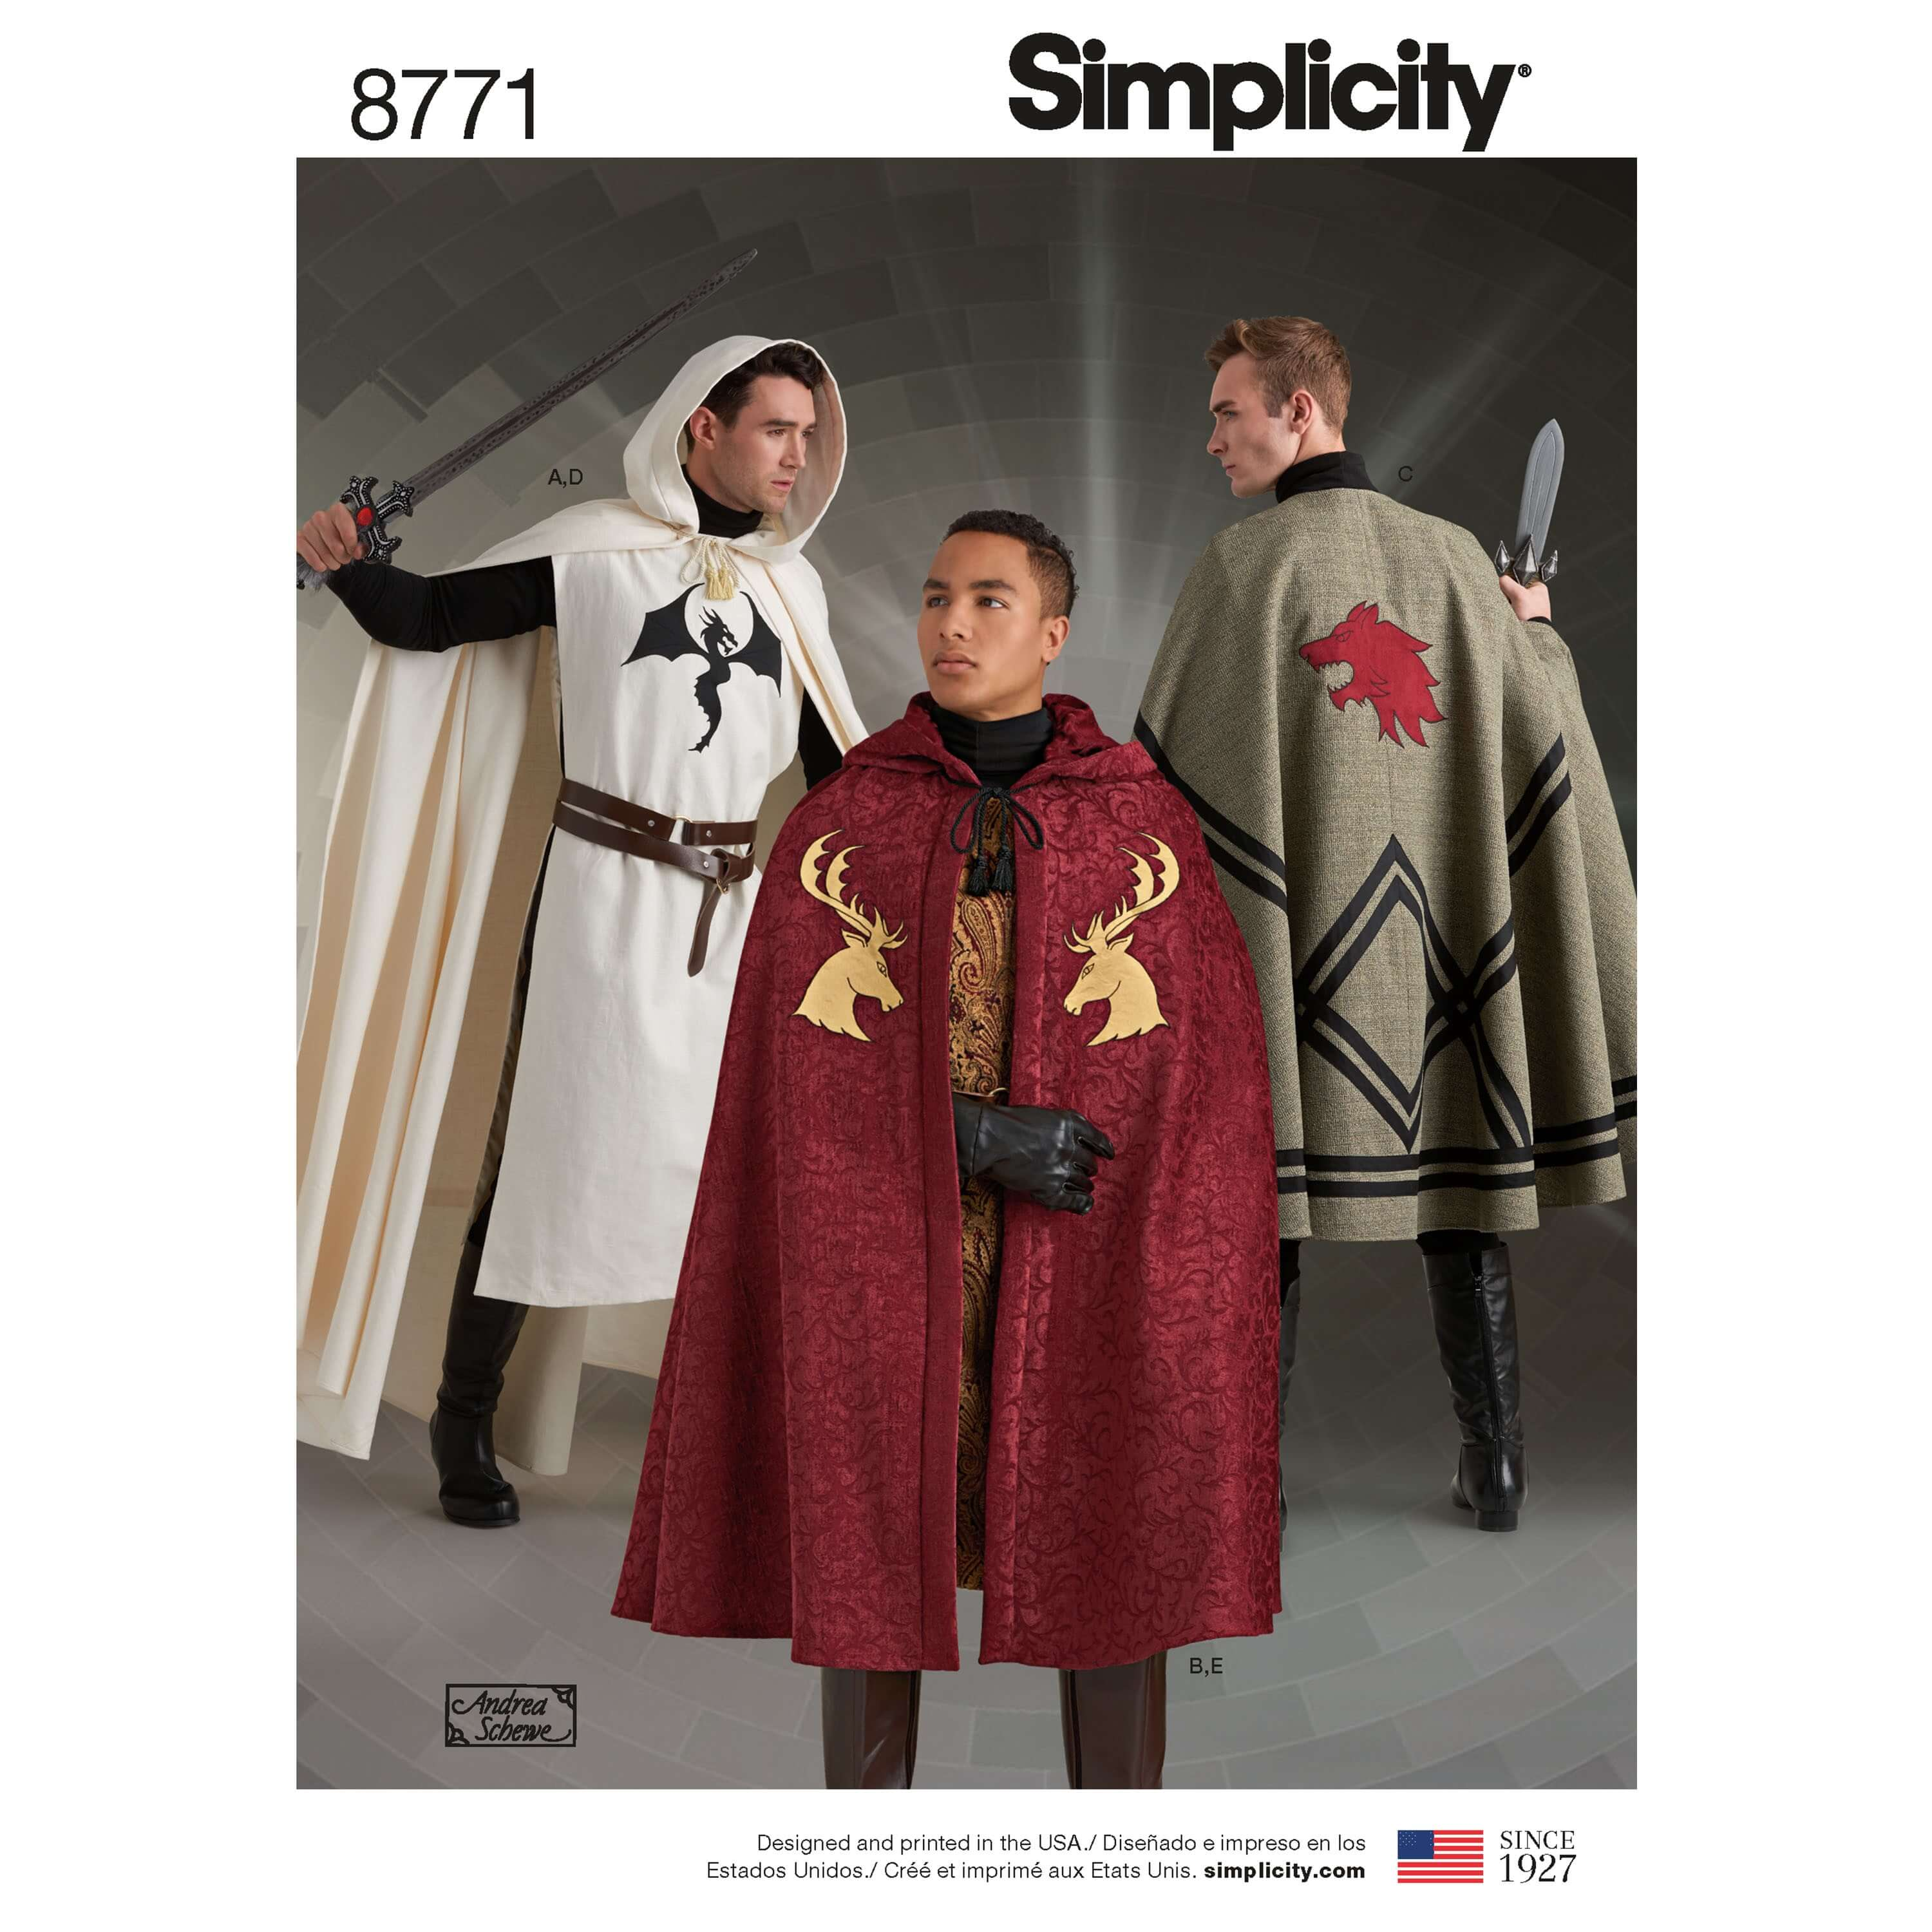 Simplicity Sewing Pattern 8771 Adult Unisex Costume Cosplay Multi Length Capes